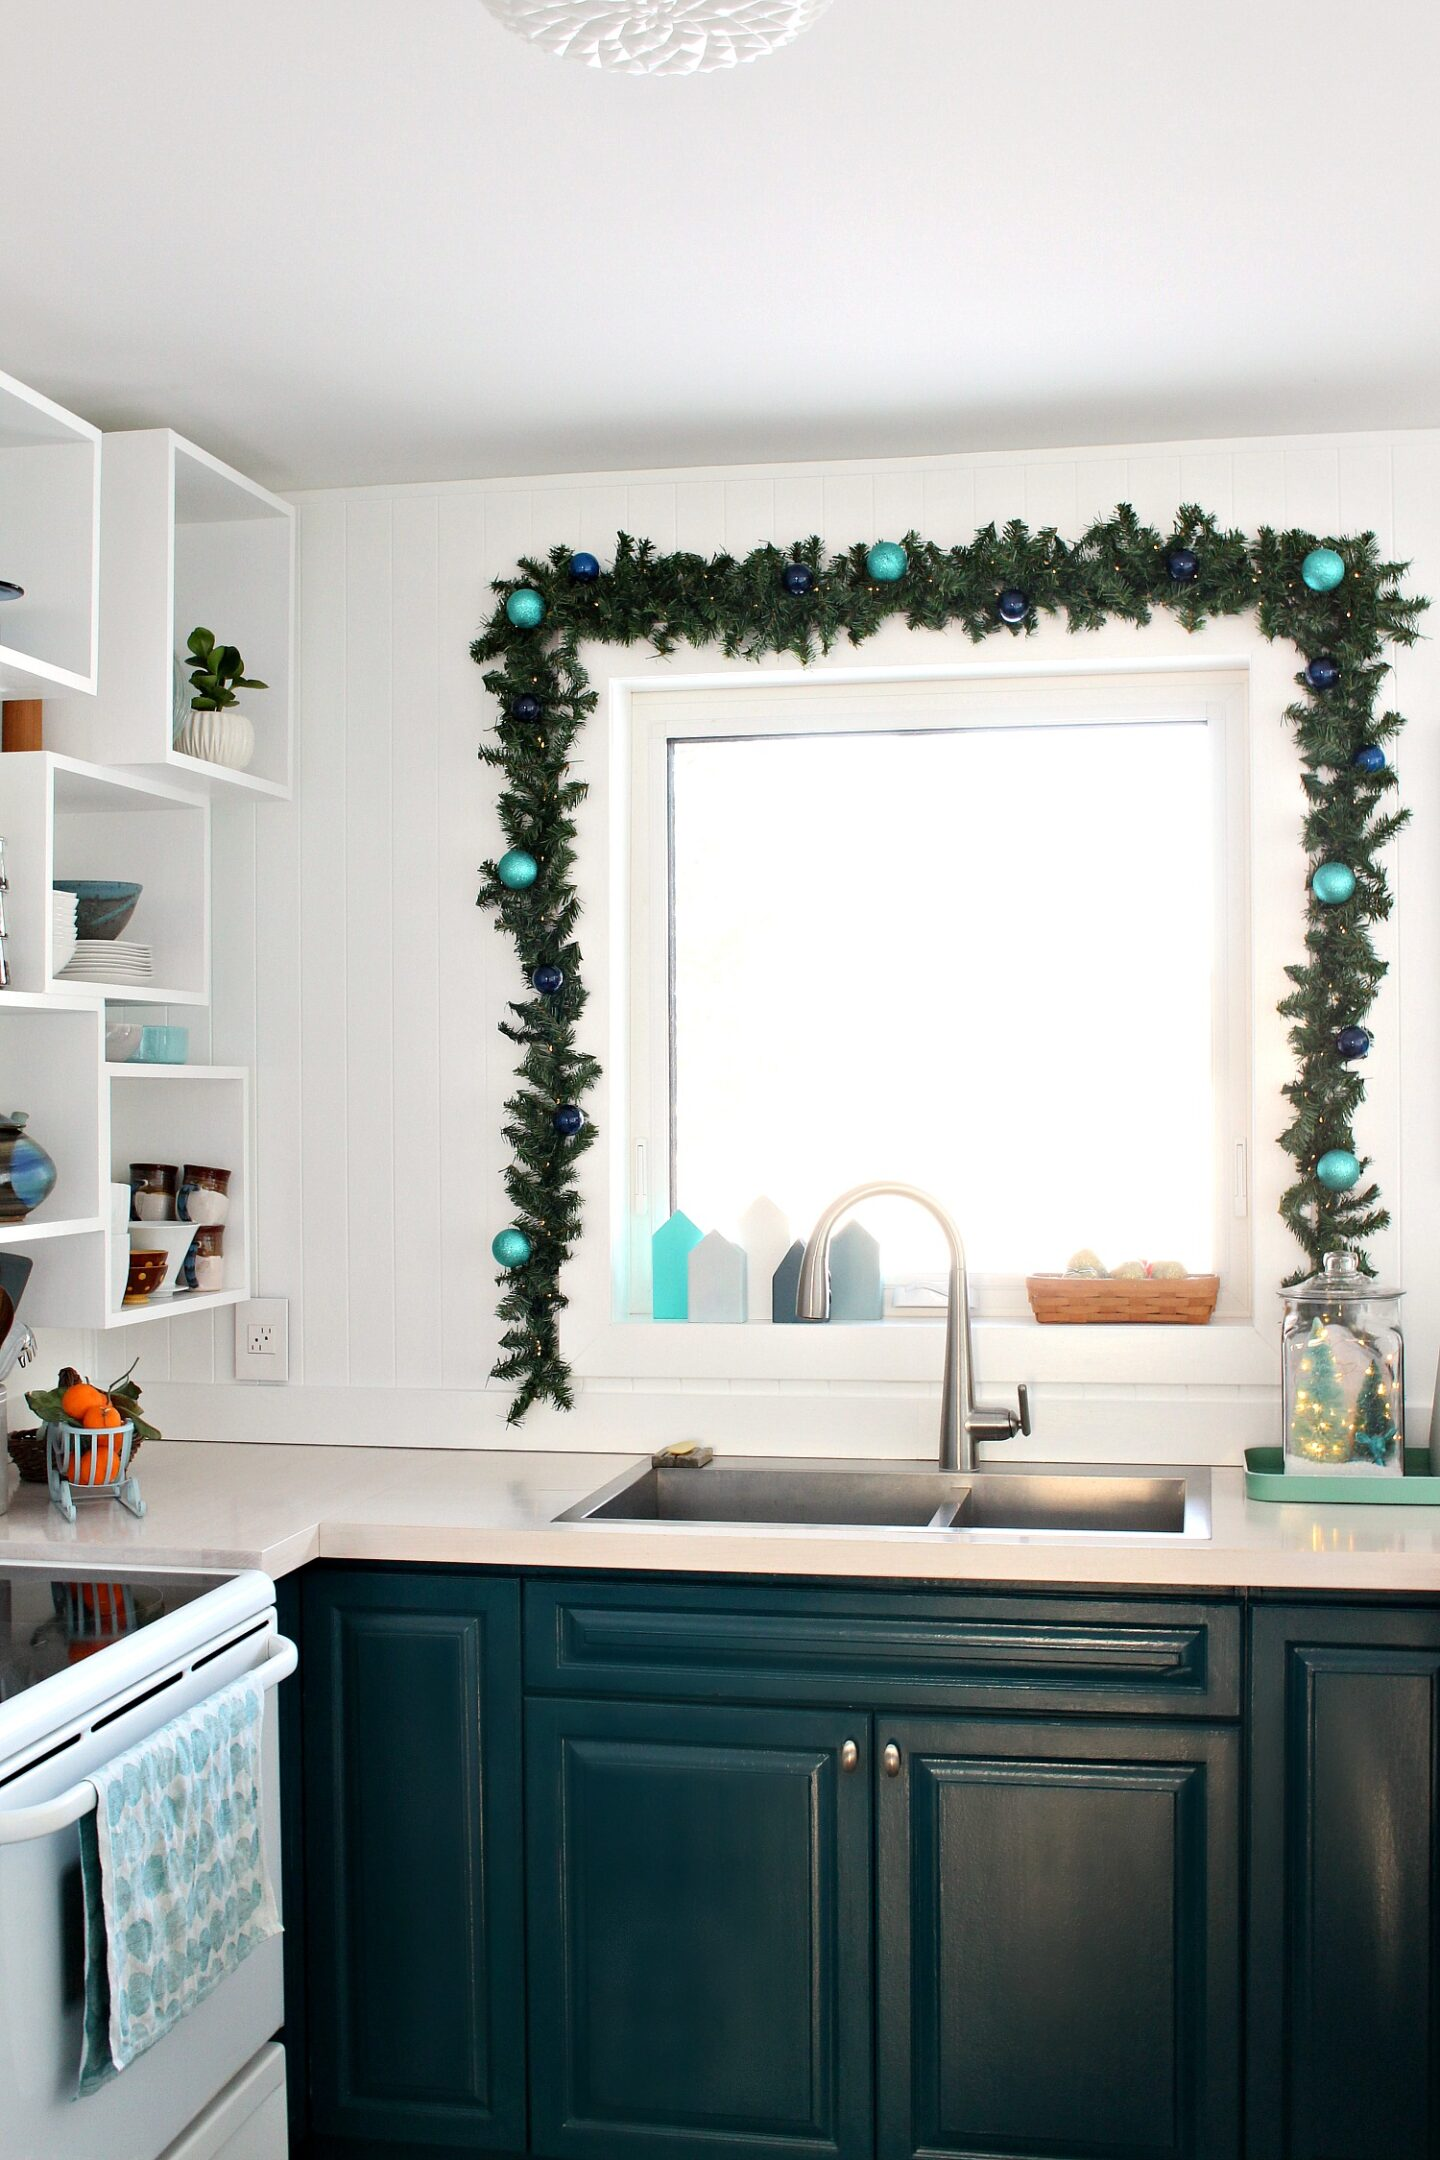 How to Hang Garland Around Window - Kitchen Window Garland for Holidays